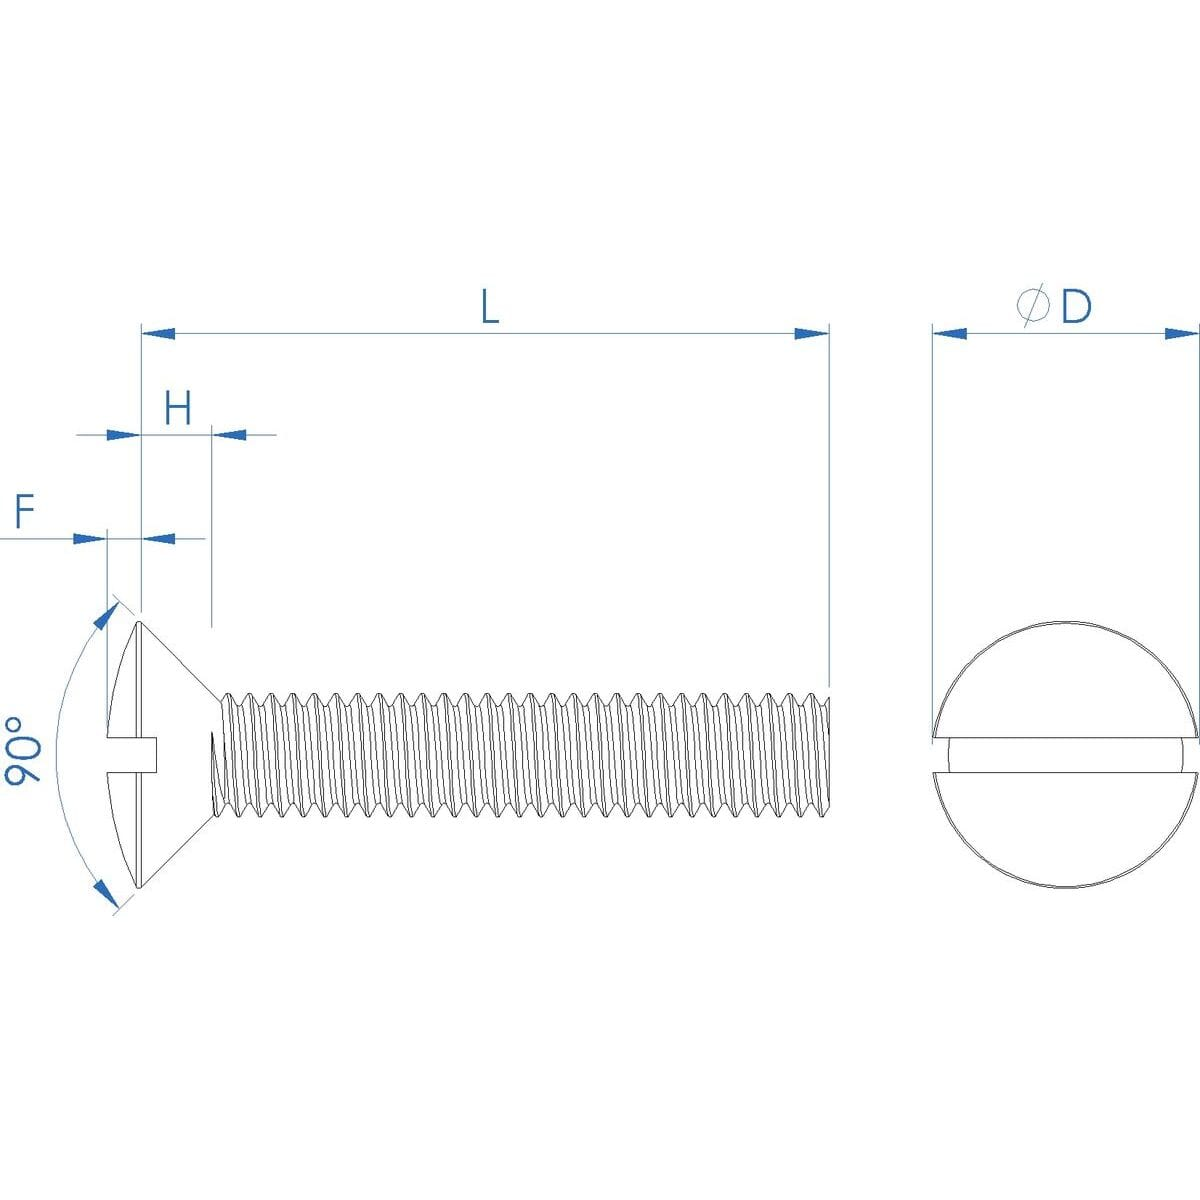 M5 x 12mm Raised Slotted Countersunk Screws (DIN 964) - Marine Stainless Steel (A4) Drawing